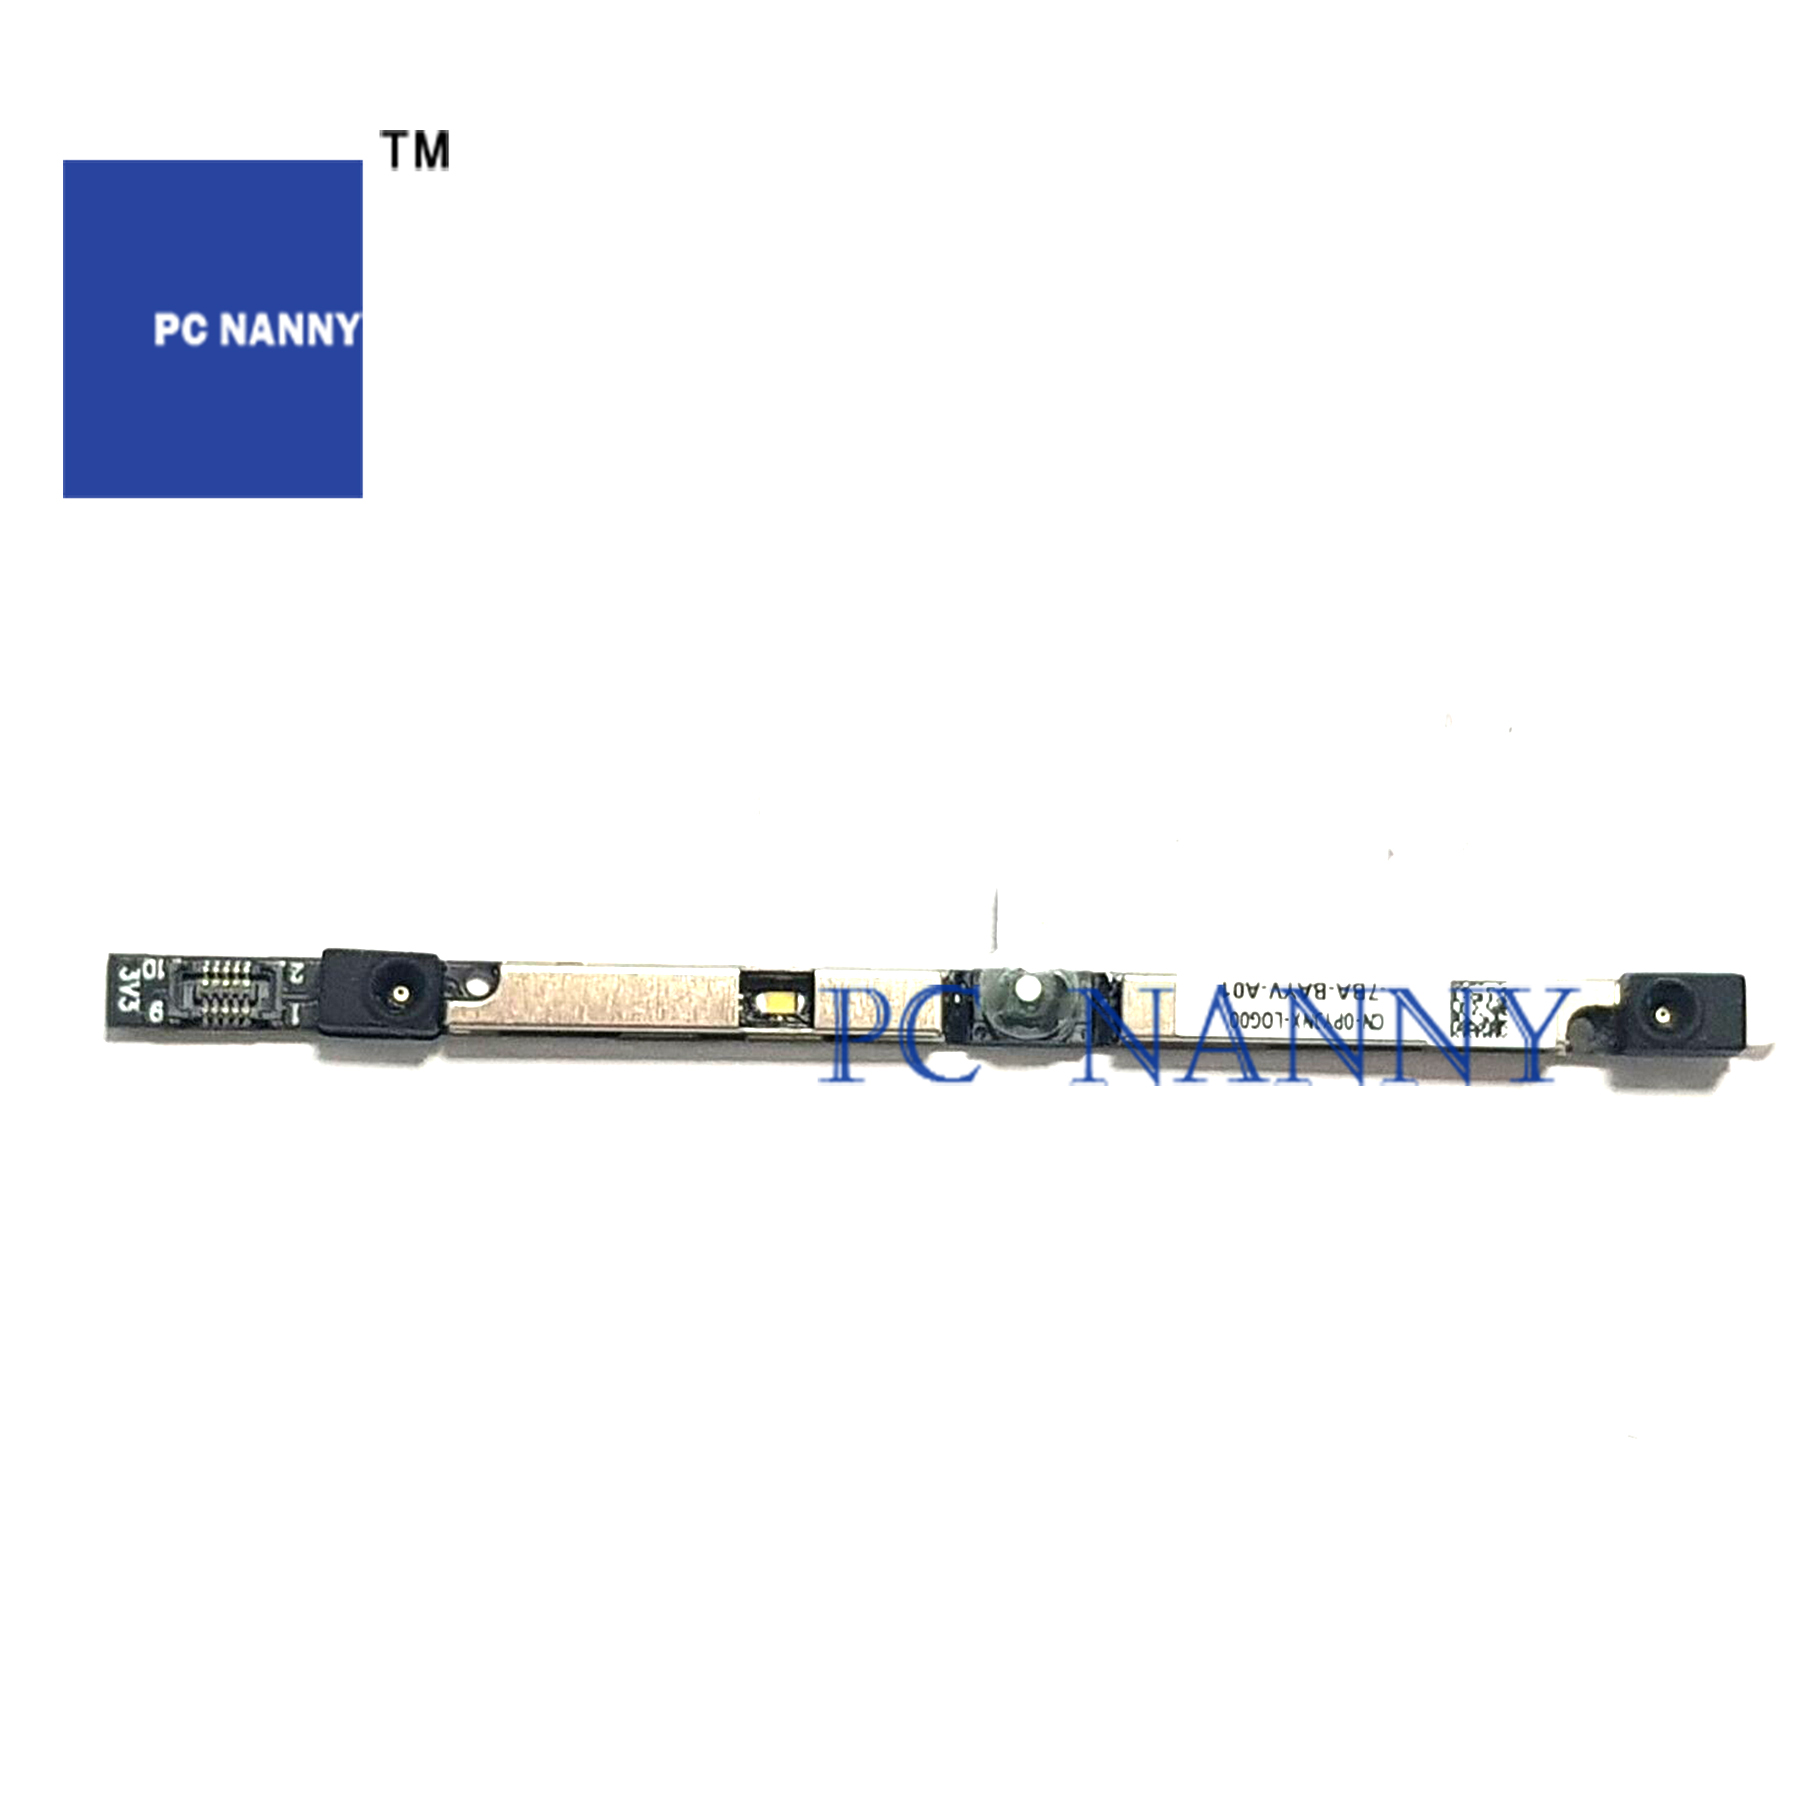 PCNANNY FOR <font><b>DELL</b></font> 7480 <font><b>7490</b></font> WEBCAM 0PYJNX Speaker 08KM5J wifi antenna A167KQ fingerprint 067P8C LED BOARD 0Y81Kr LS-E131P image